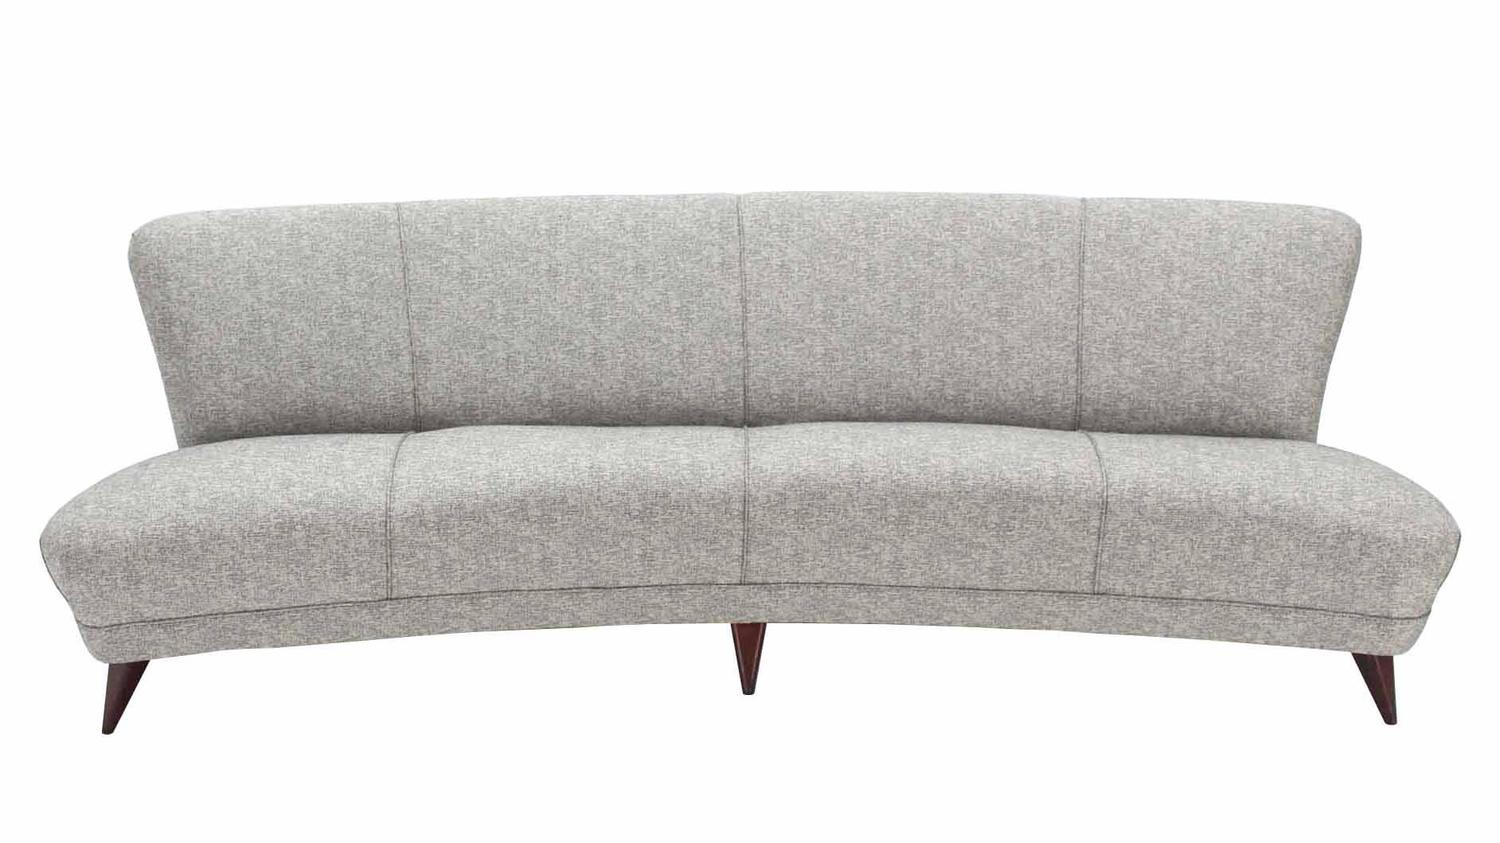 cloud sofa for sale cheap under 100 new upholstery at 1stdibs